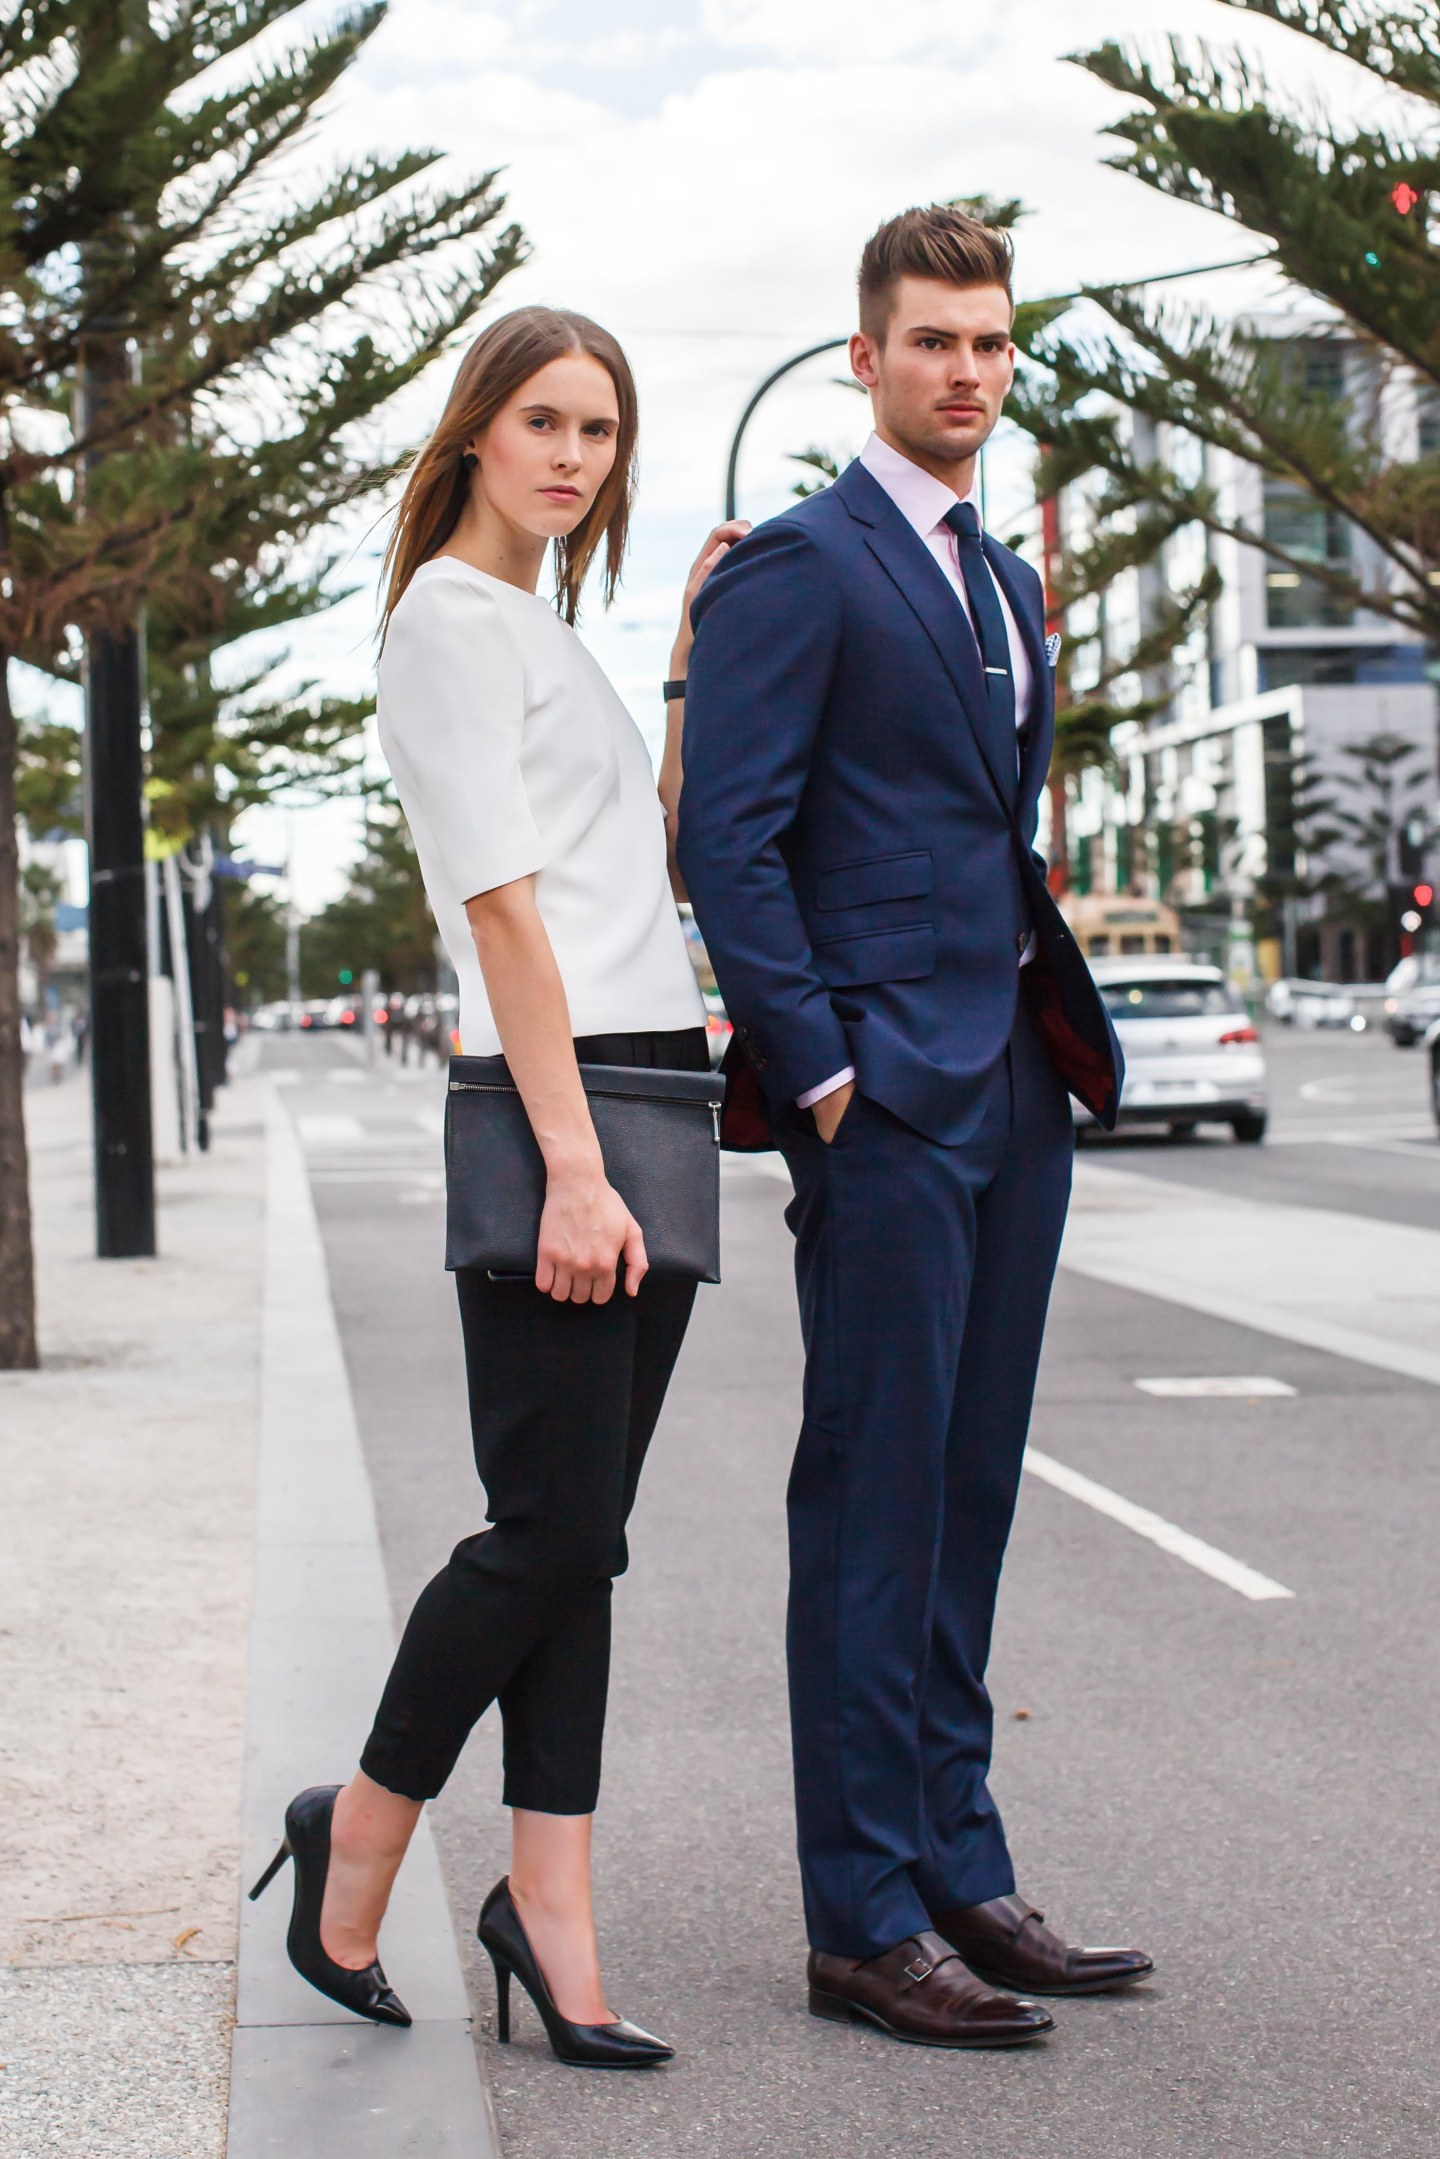 Suit, Separates, Accessories, monk straps, pumps, shoes, top, pants, shirt, clutch, womenswear, menswear, street style, your ensemble, yourensemble, yourensemble.com